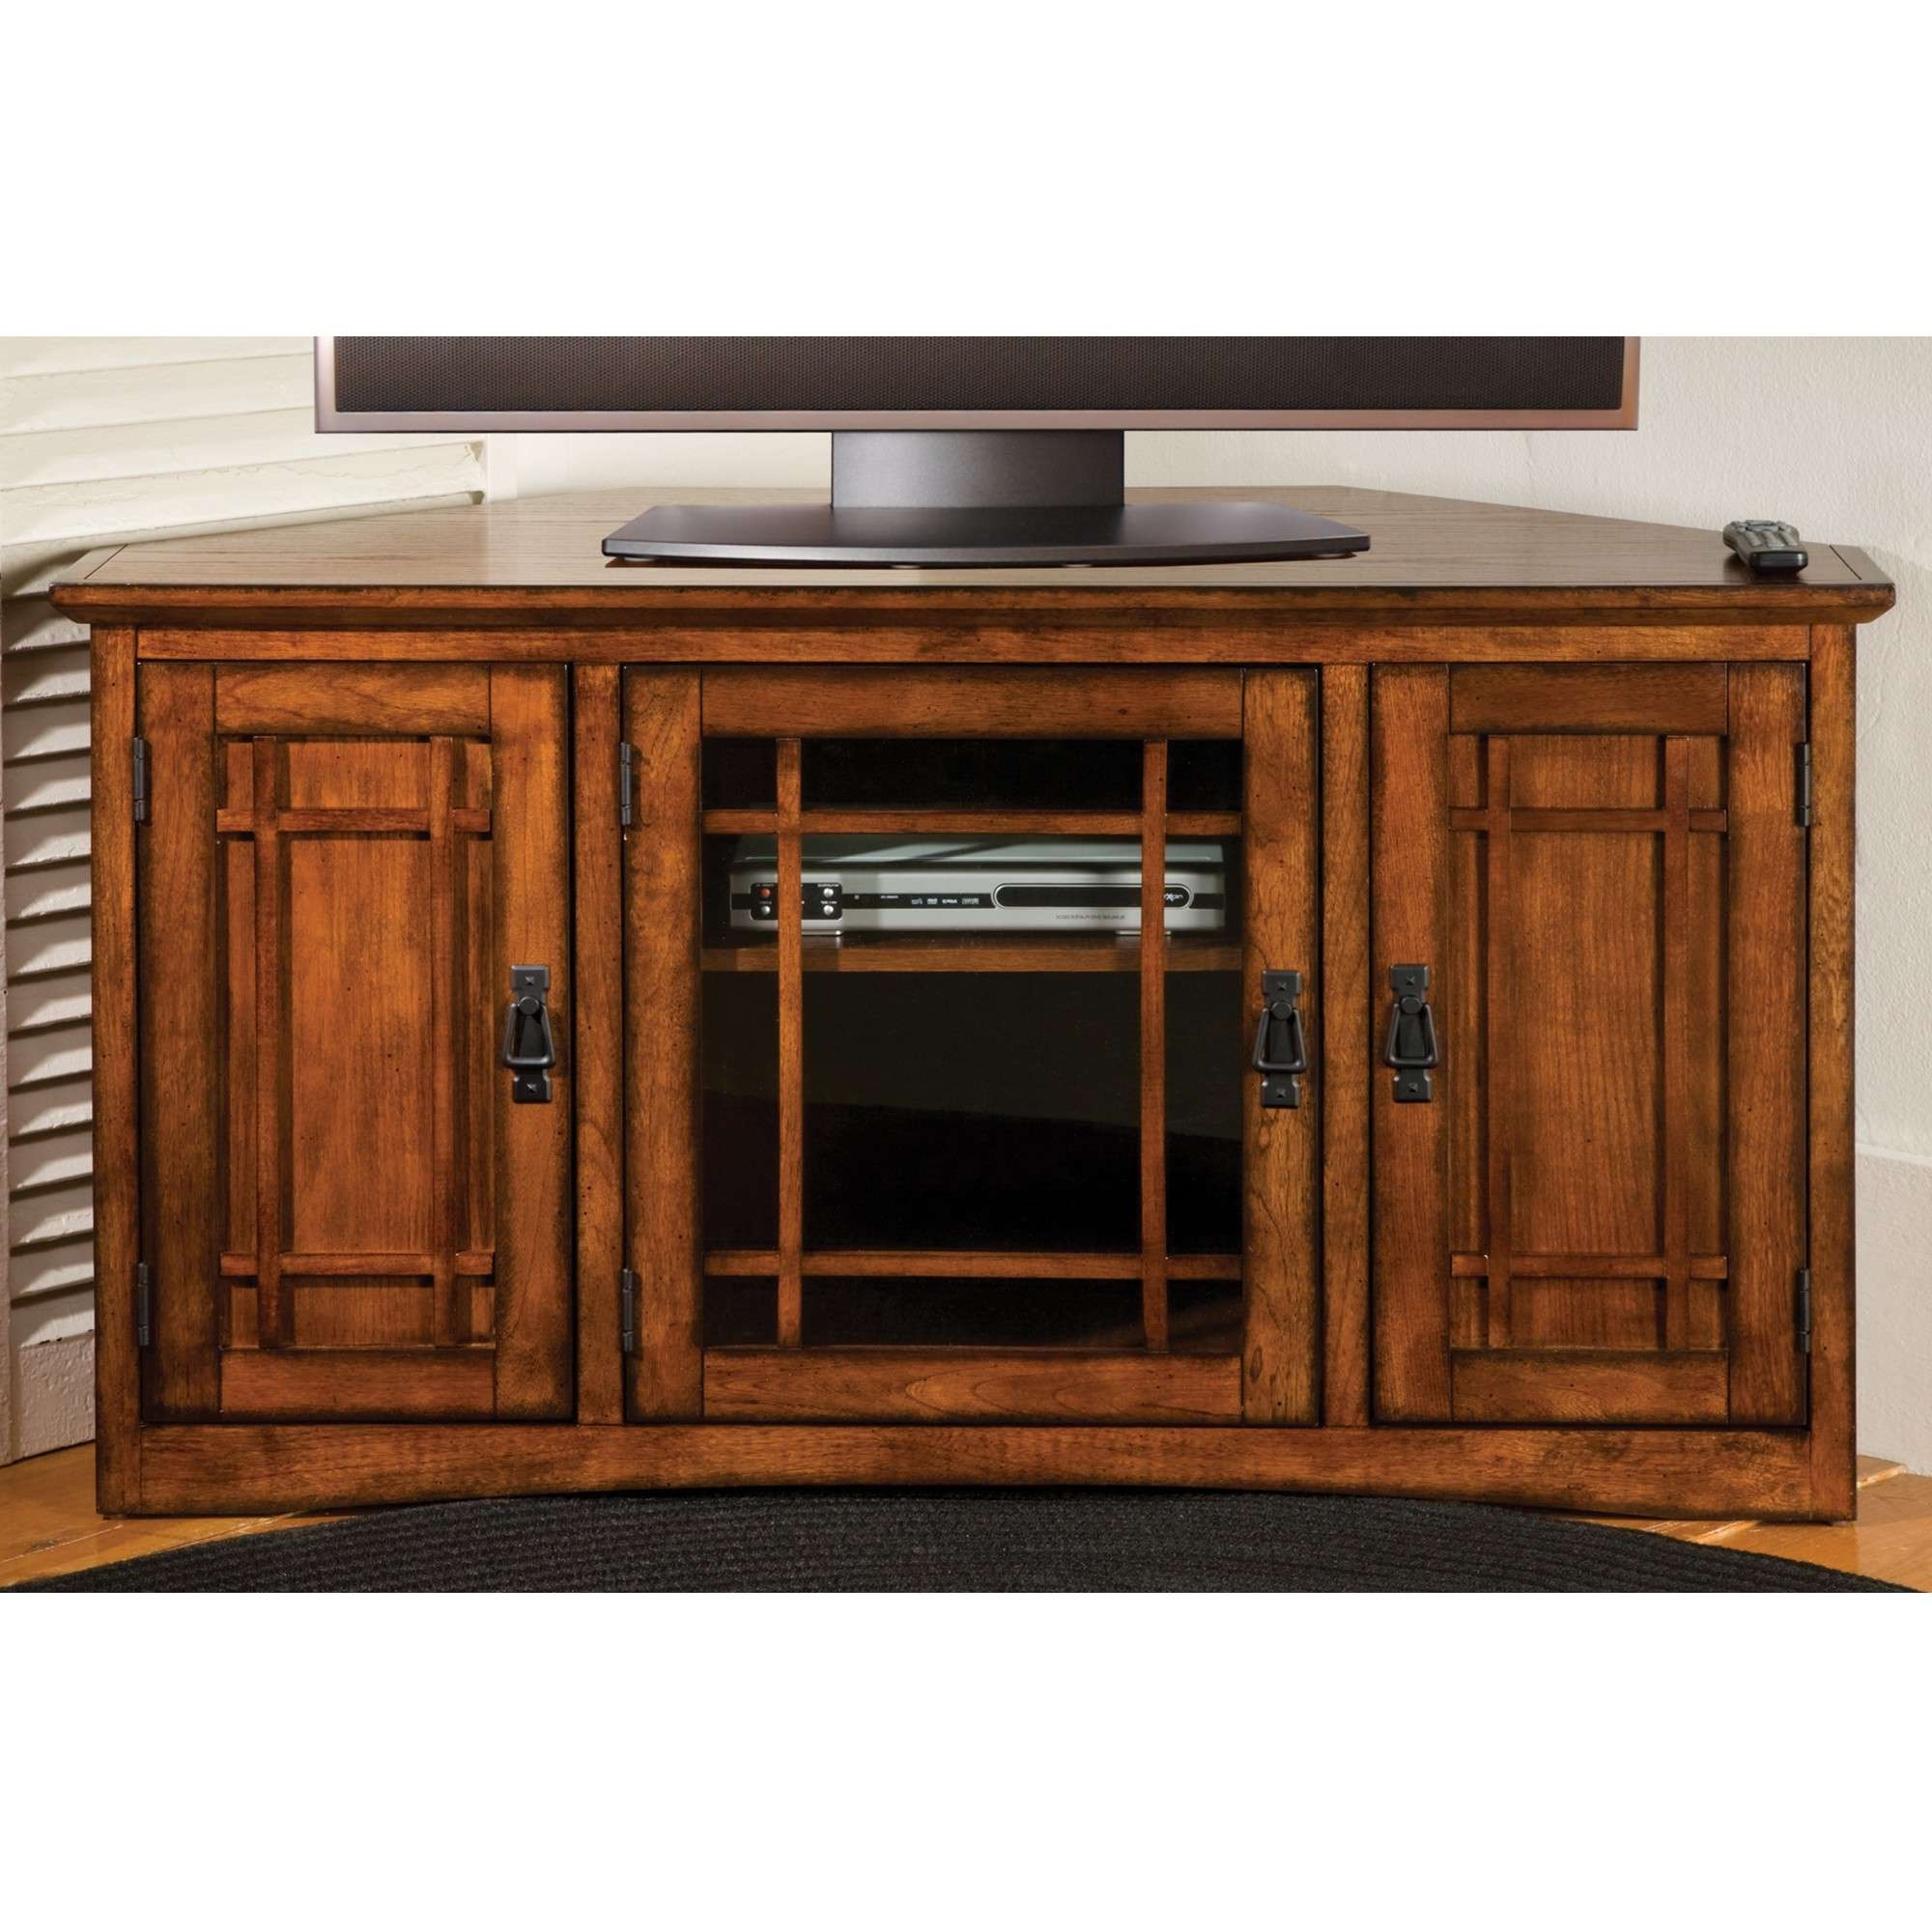 Awesome Corner Tv Cabinet With Doors For Your Lovely Home Within Black Tv Cabinets With Doors (View 1 of 20)